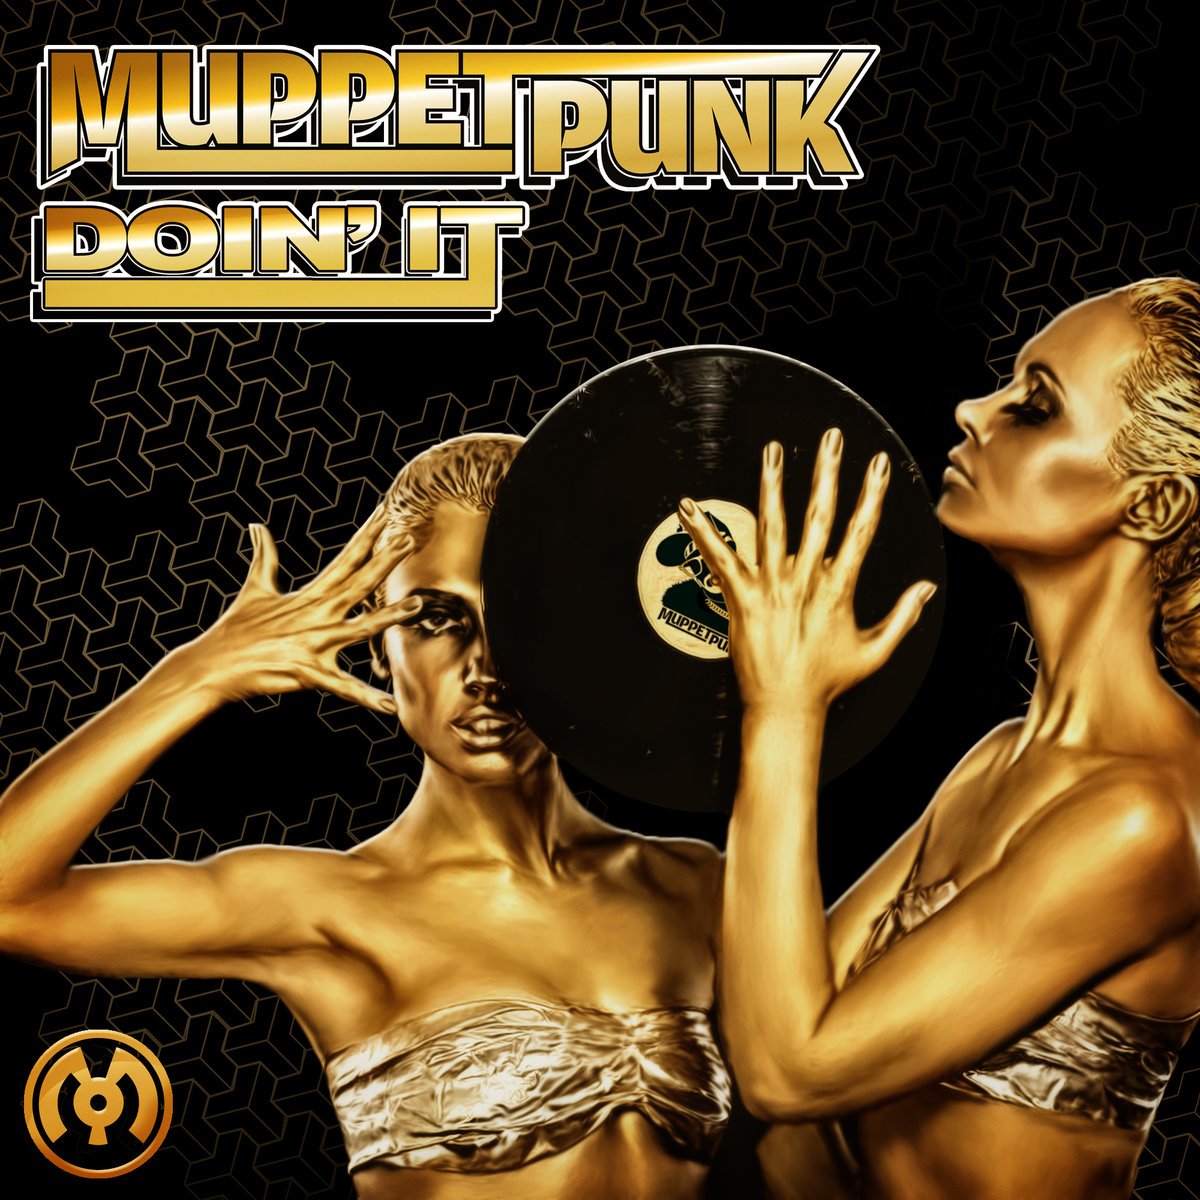 Muppet Punk - Too Hot @ 'Doin' It' album (electronic, dubstep)